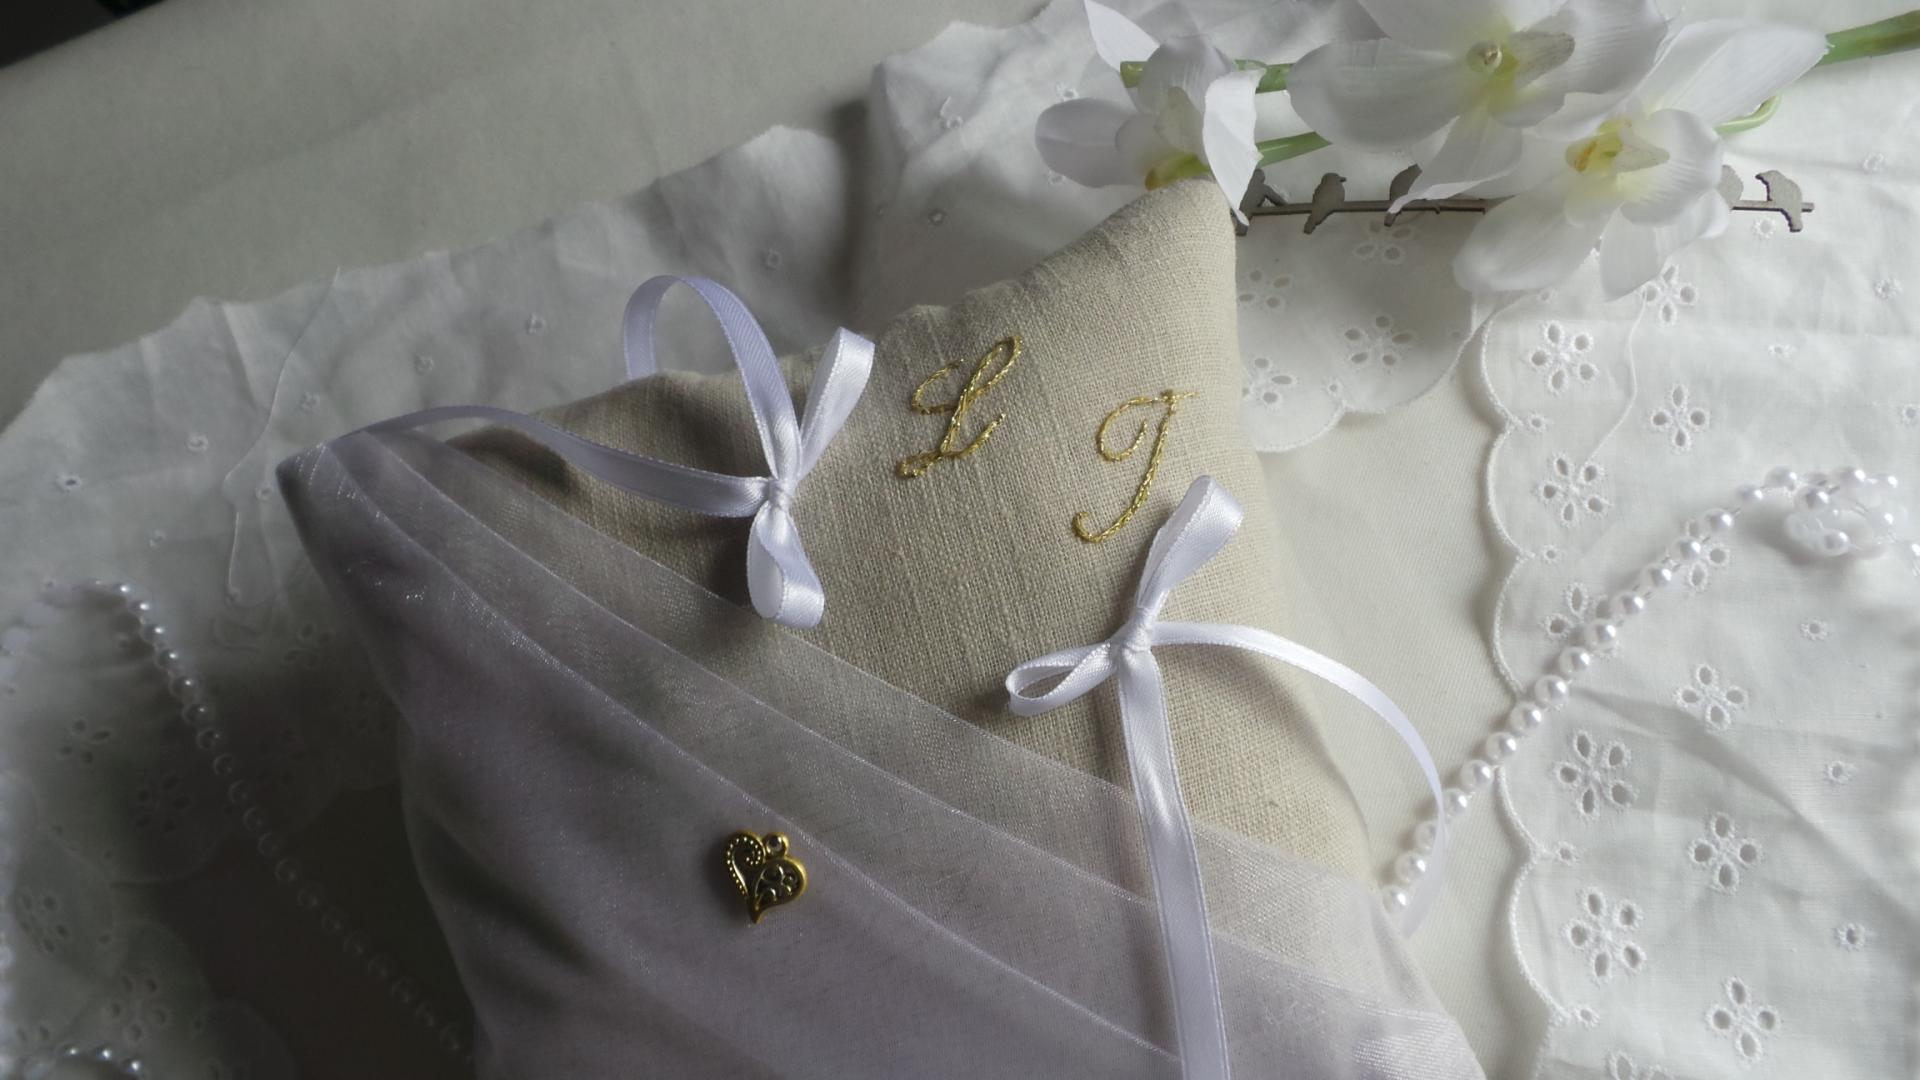 Coussin mariage chic personnalise